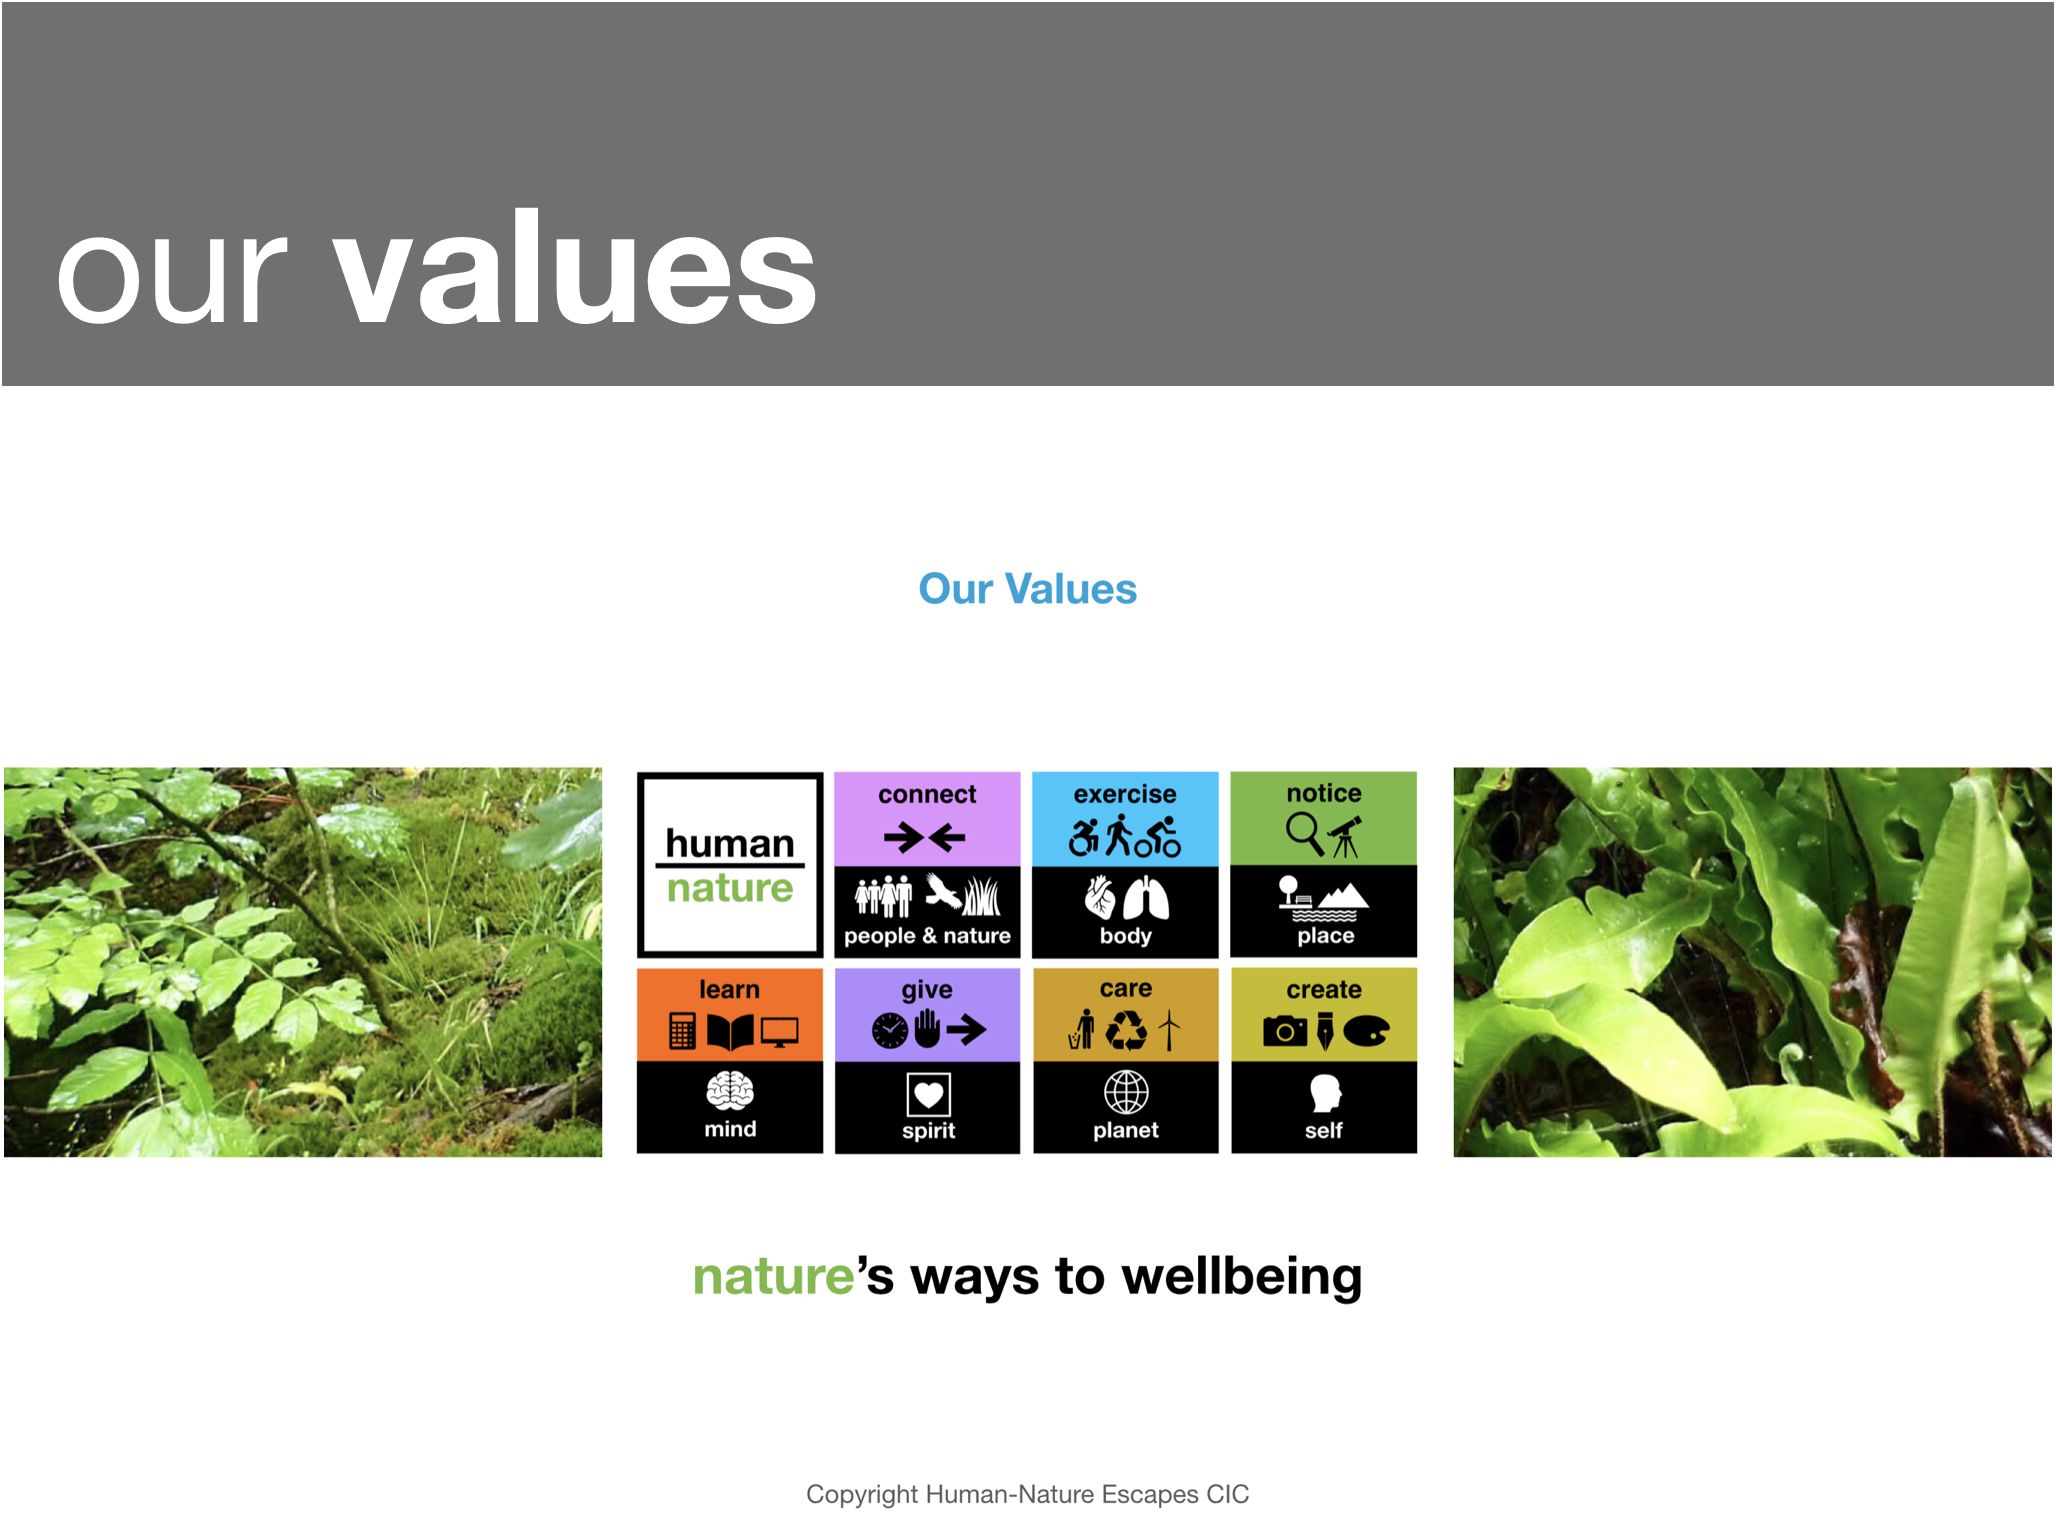 Human-Nature - Our Values